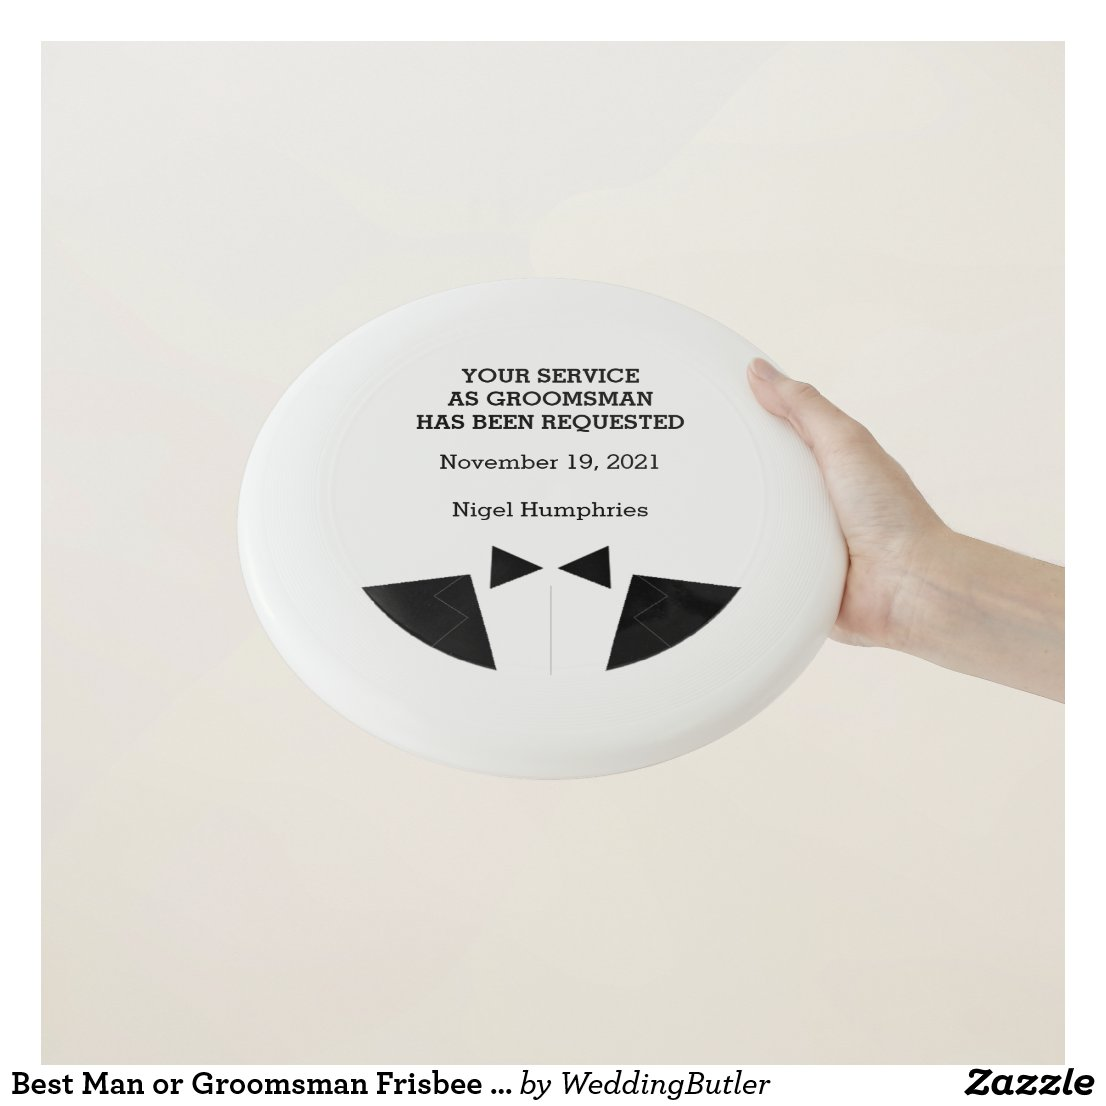 Best Man or Groomsman Frisbee Invite